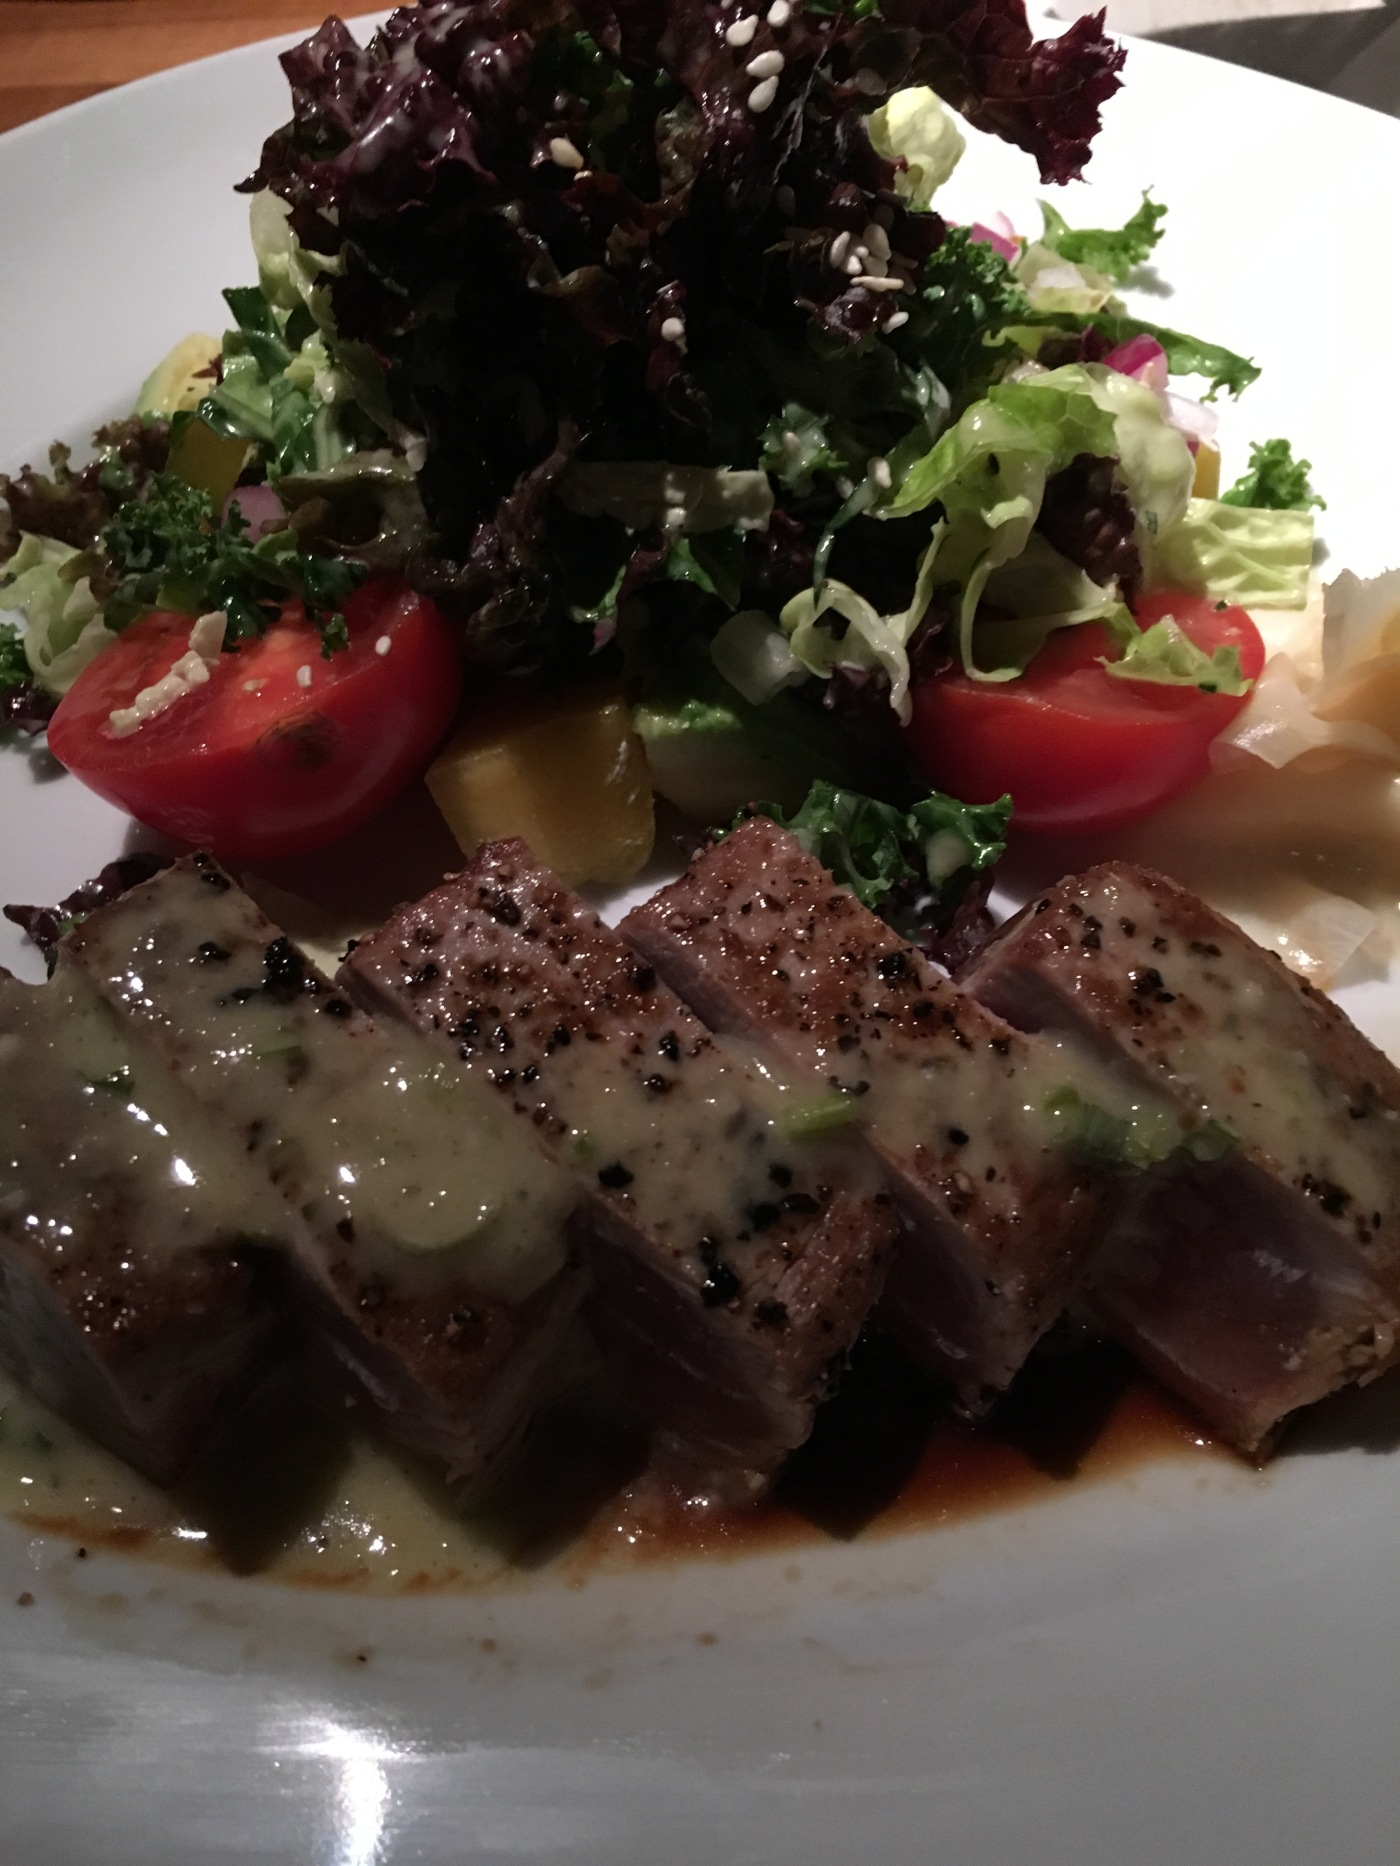 Green Machine - Sashimi Ahi Tuna and Mixed Greens at Los Altos Grill in Los Altos, California